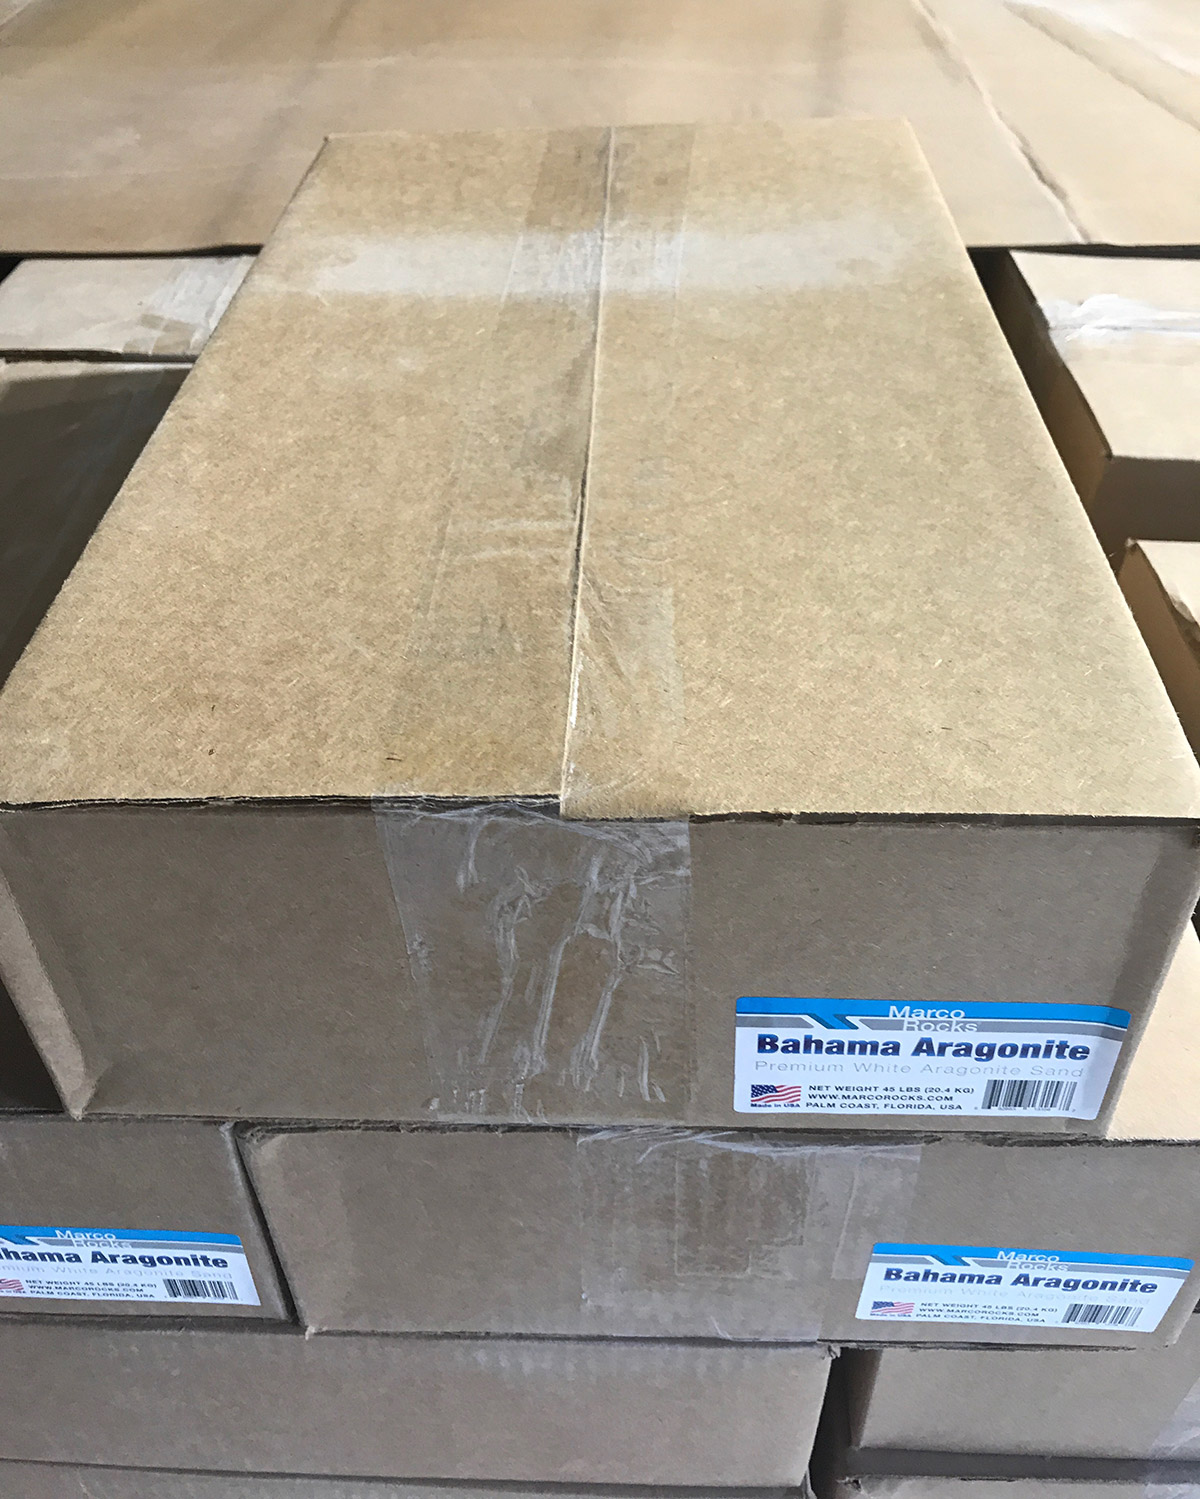 Bahama Aragonite Sand - Shipping Boxes